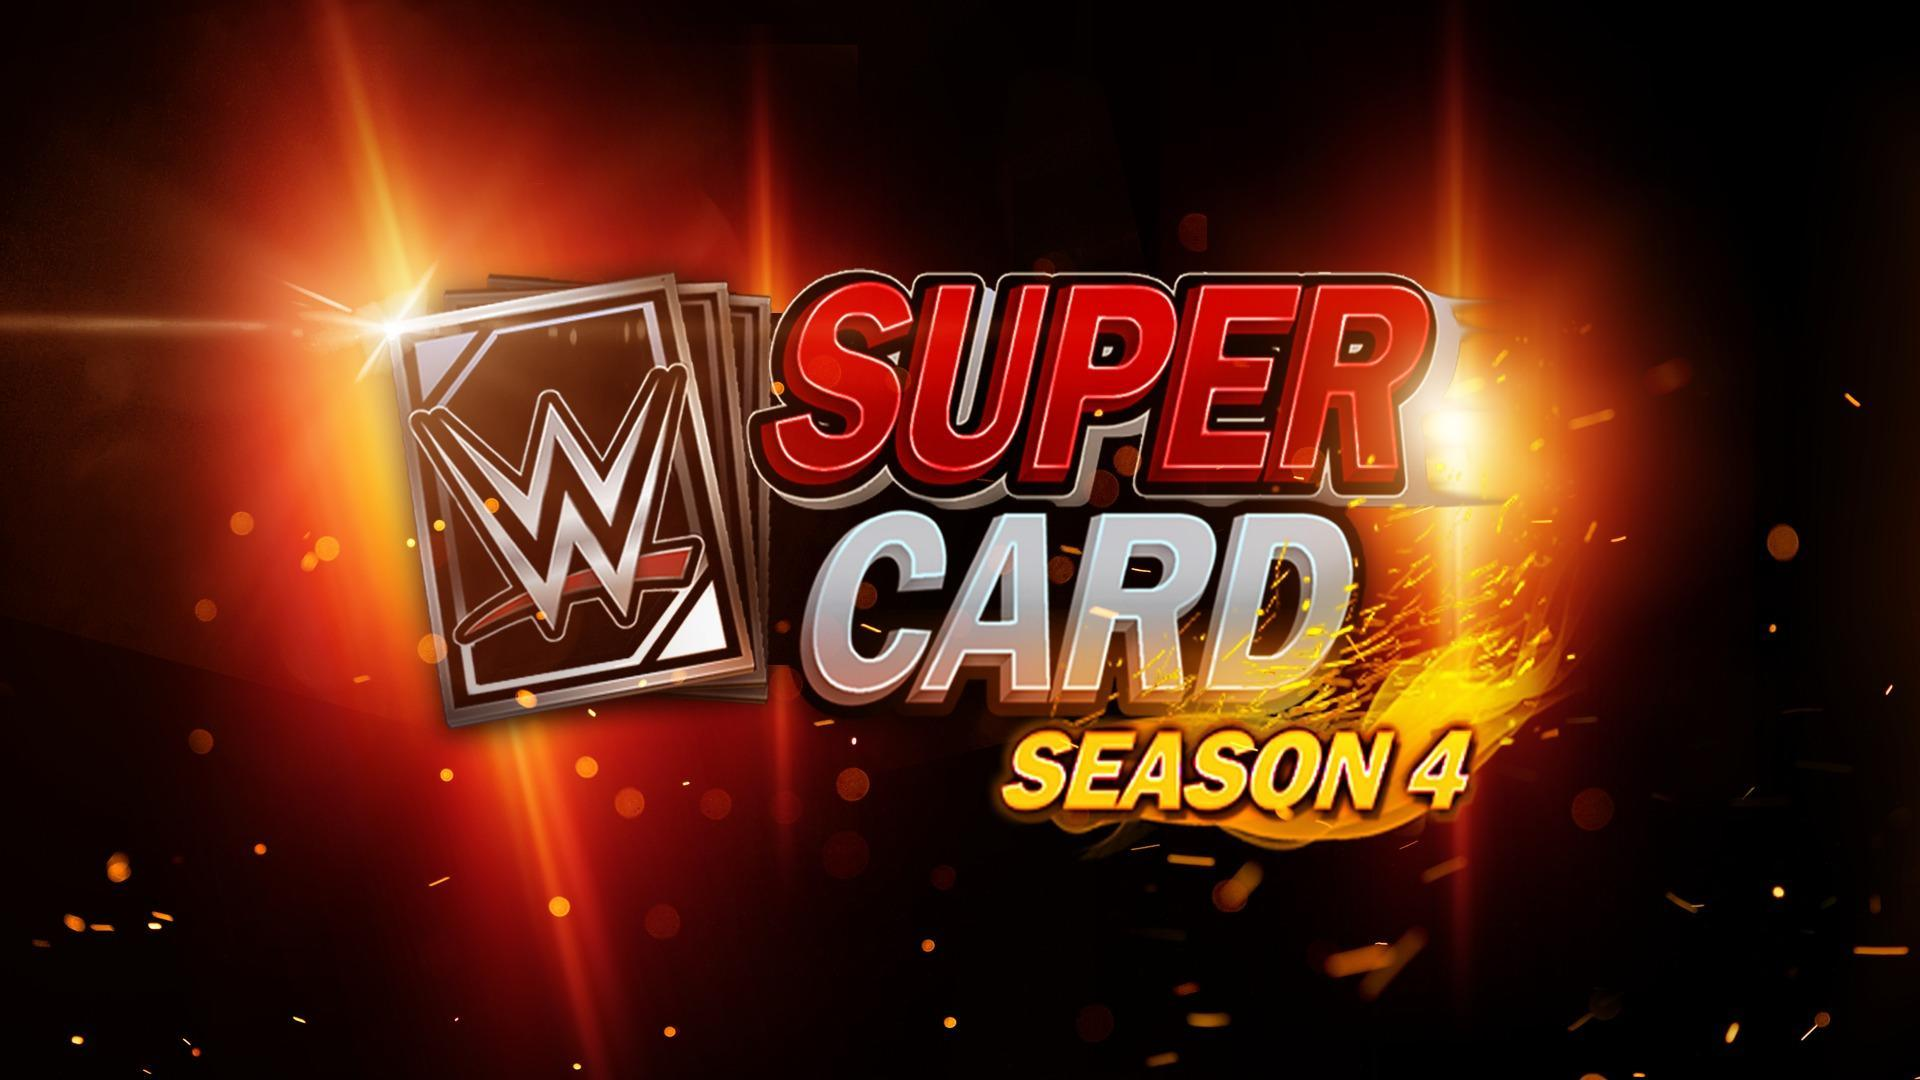 WWE SuperCard Season 4 Update Announced! Coming Soon to iOS & Android